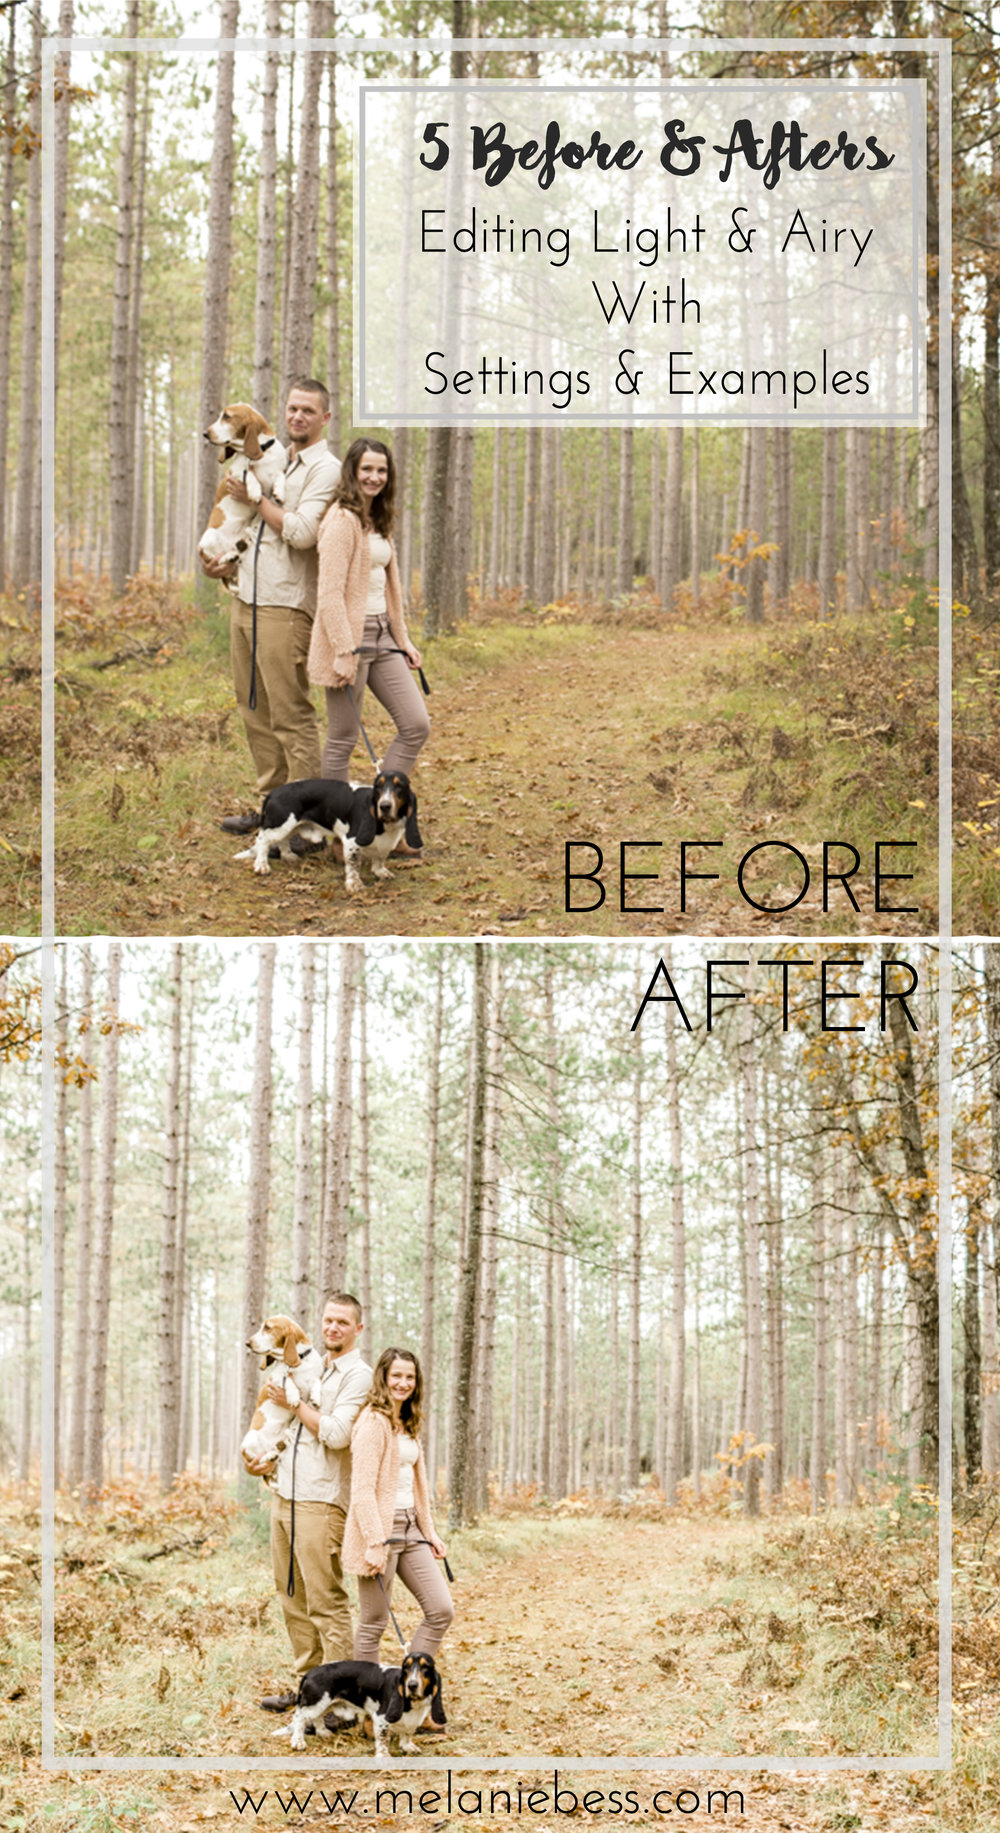 Before & After Editing Light and Airy - Blog Post.jpg